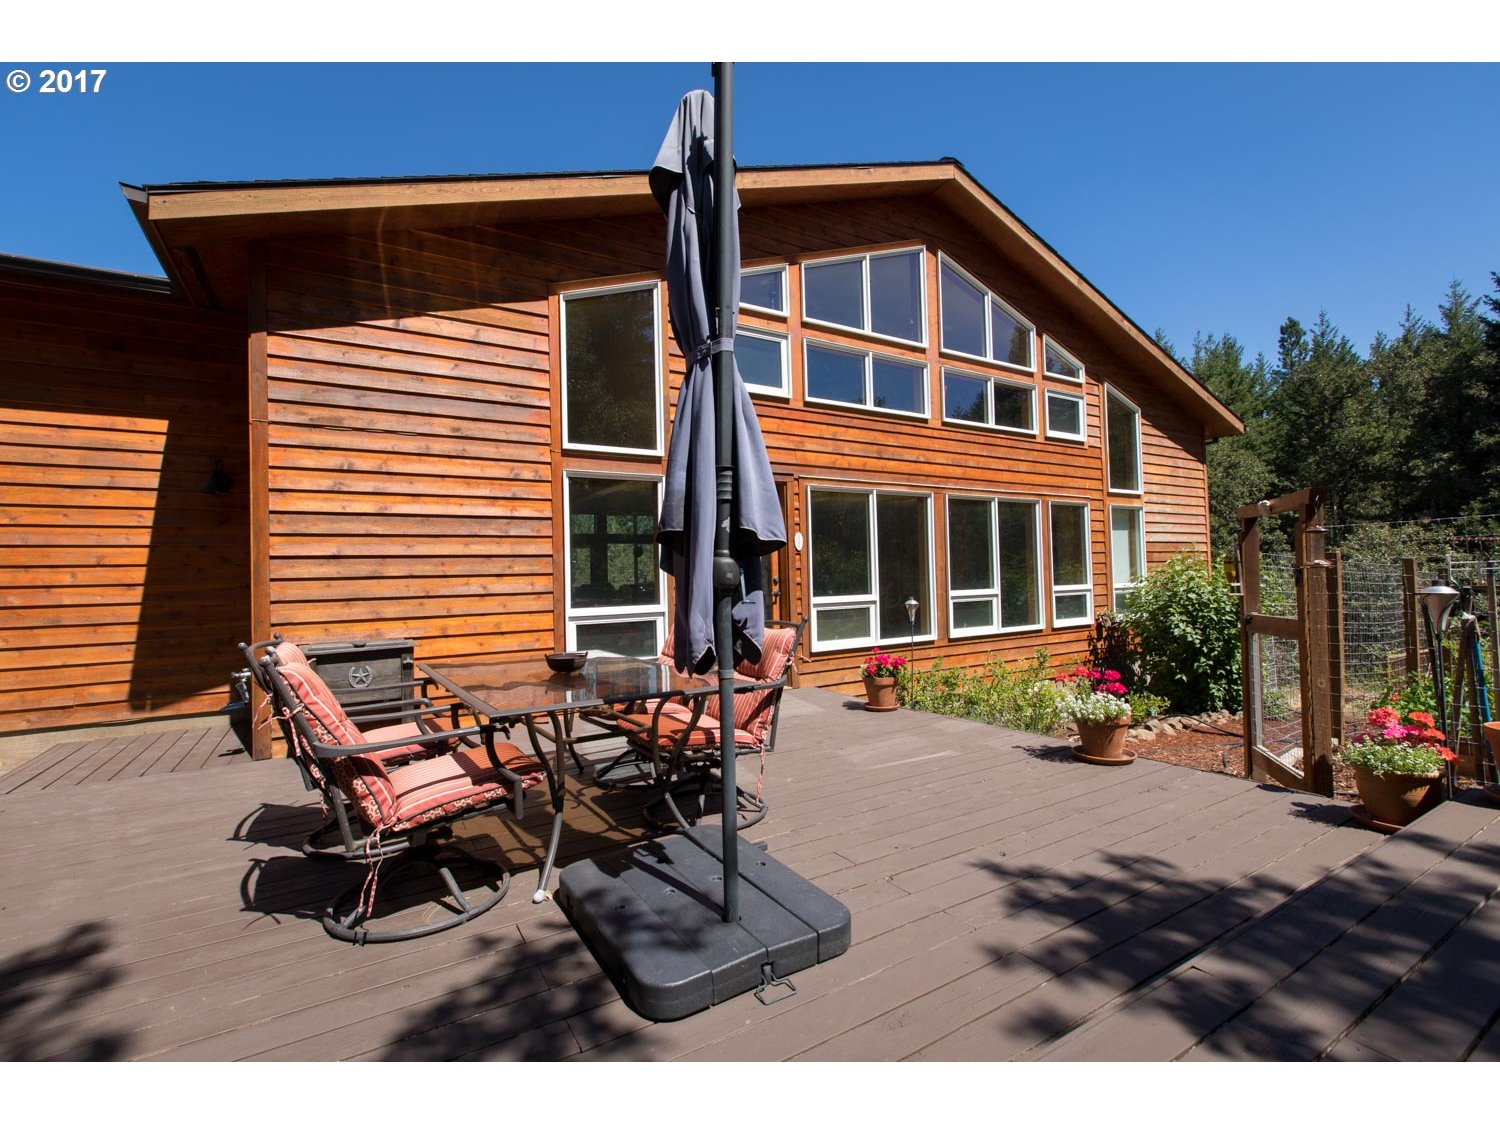 2012 LONELY LN, Mosier, OR 97040